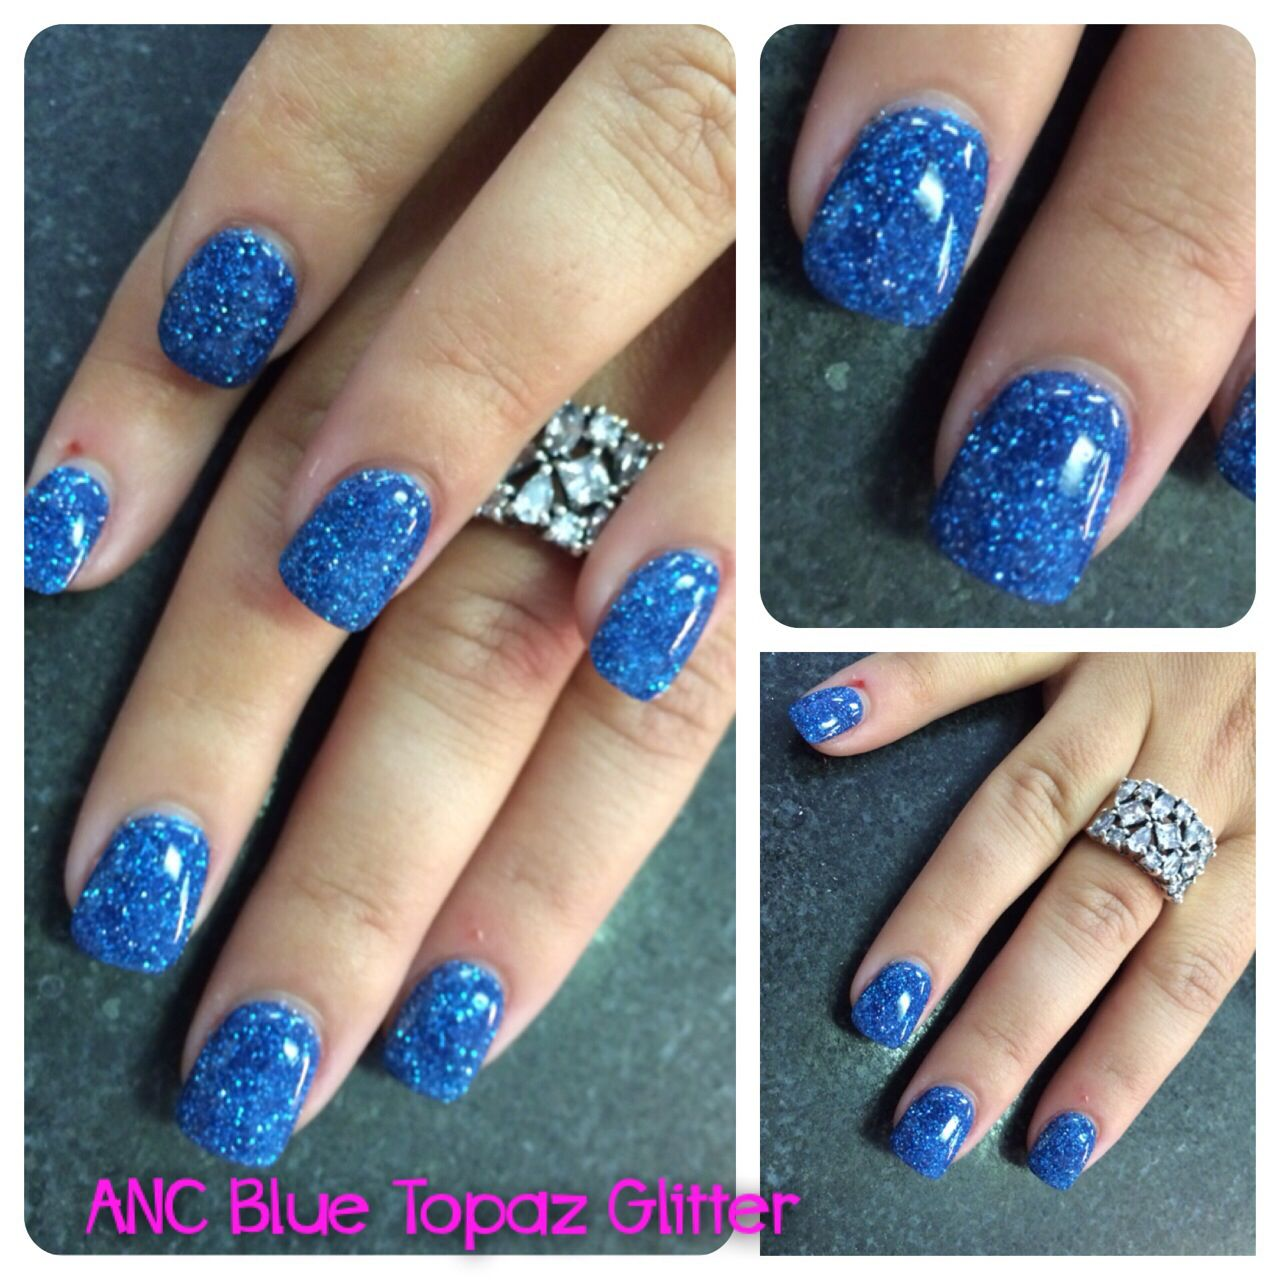 ANC glitters - ANC Glitters Amazing Nails Concept ANC Nails Ombre ANC